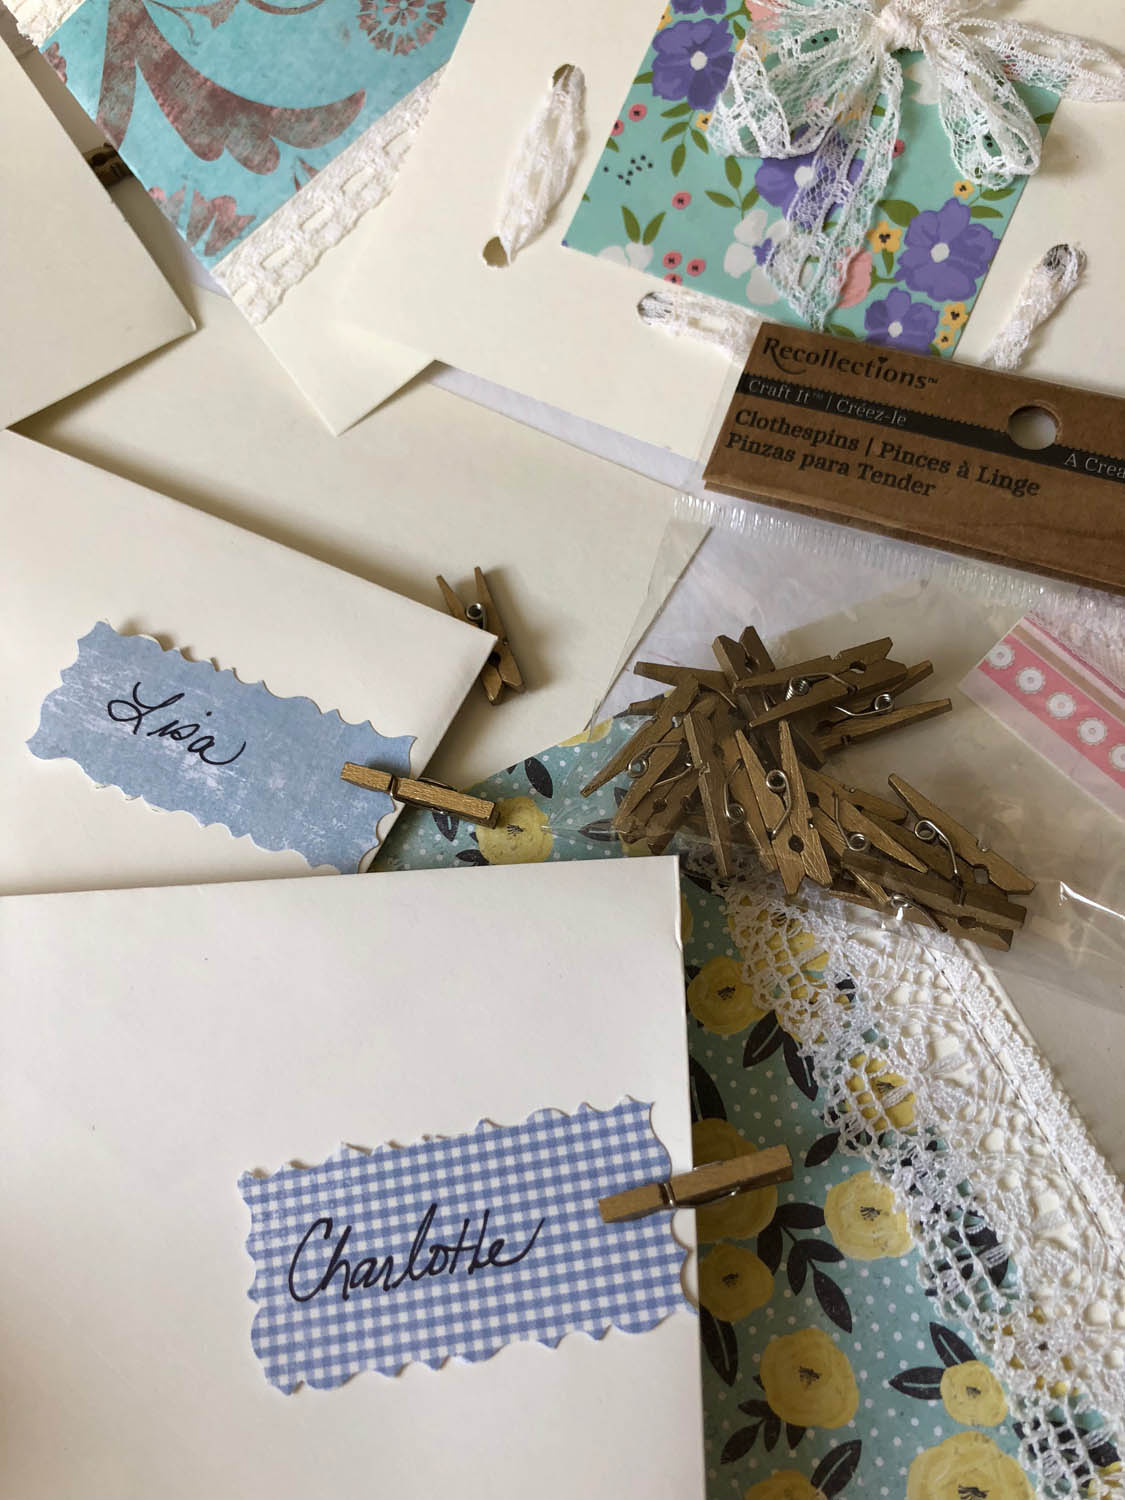 mini clothespins to label cards or use as place markers